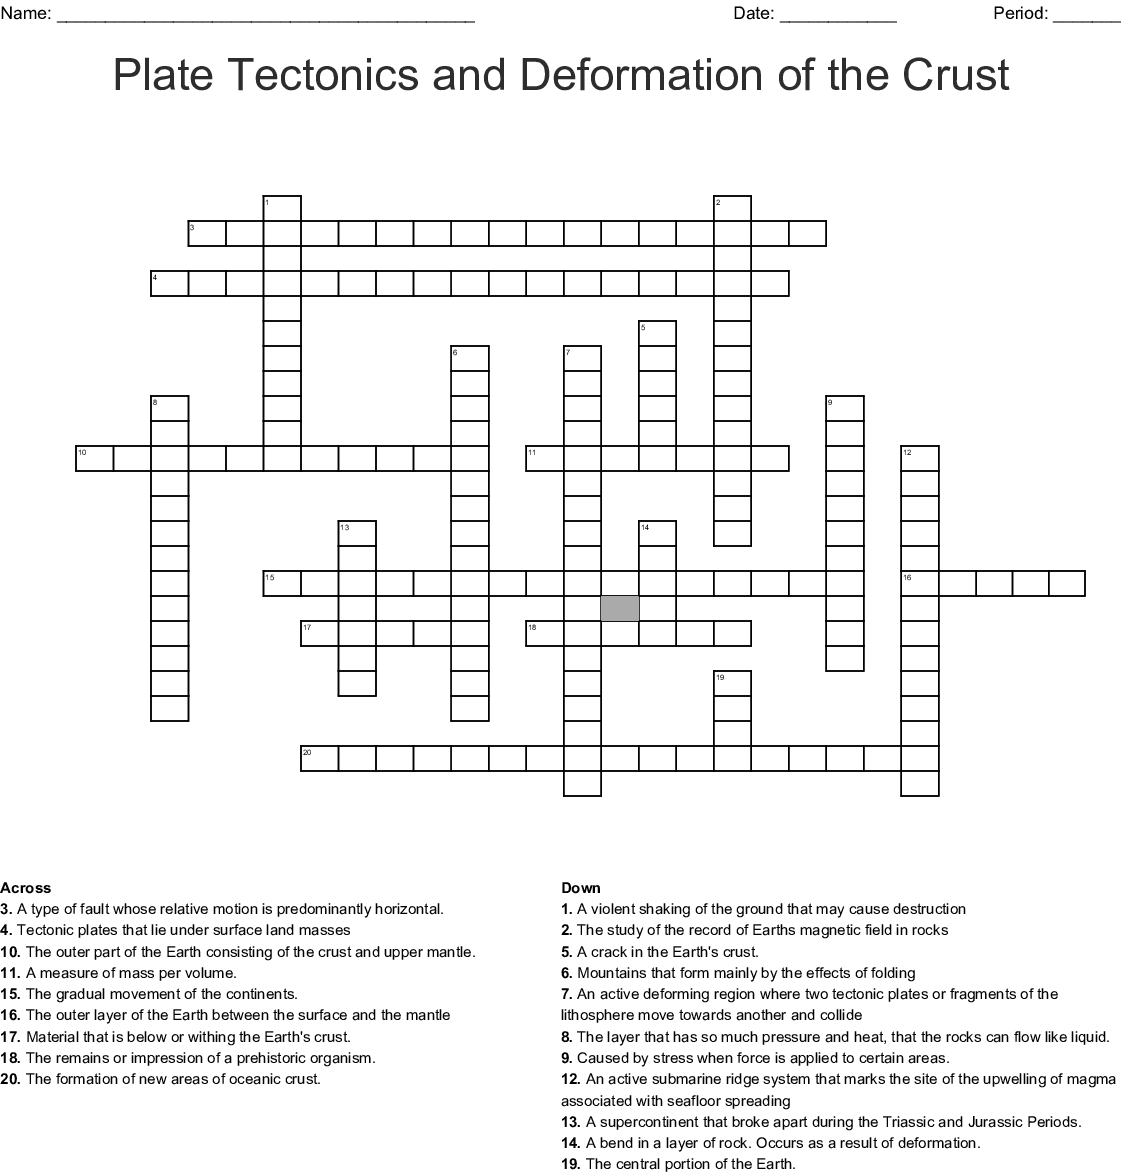 Plate Tectonics And Deformation Of The Crust Crossword